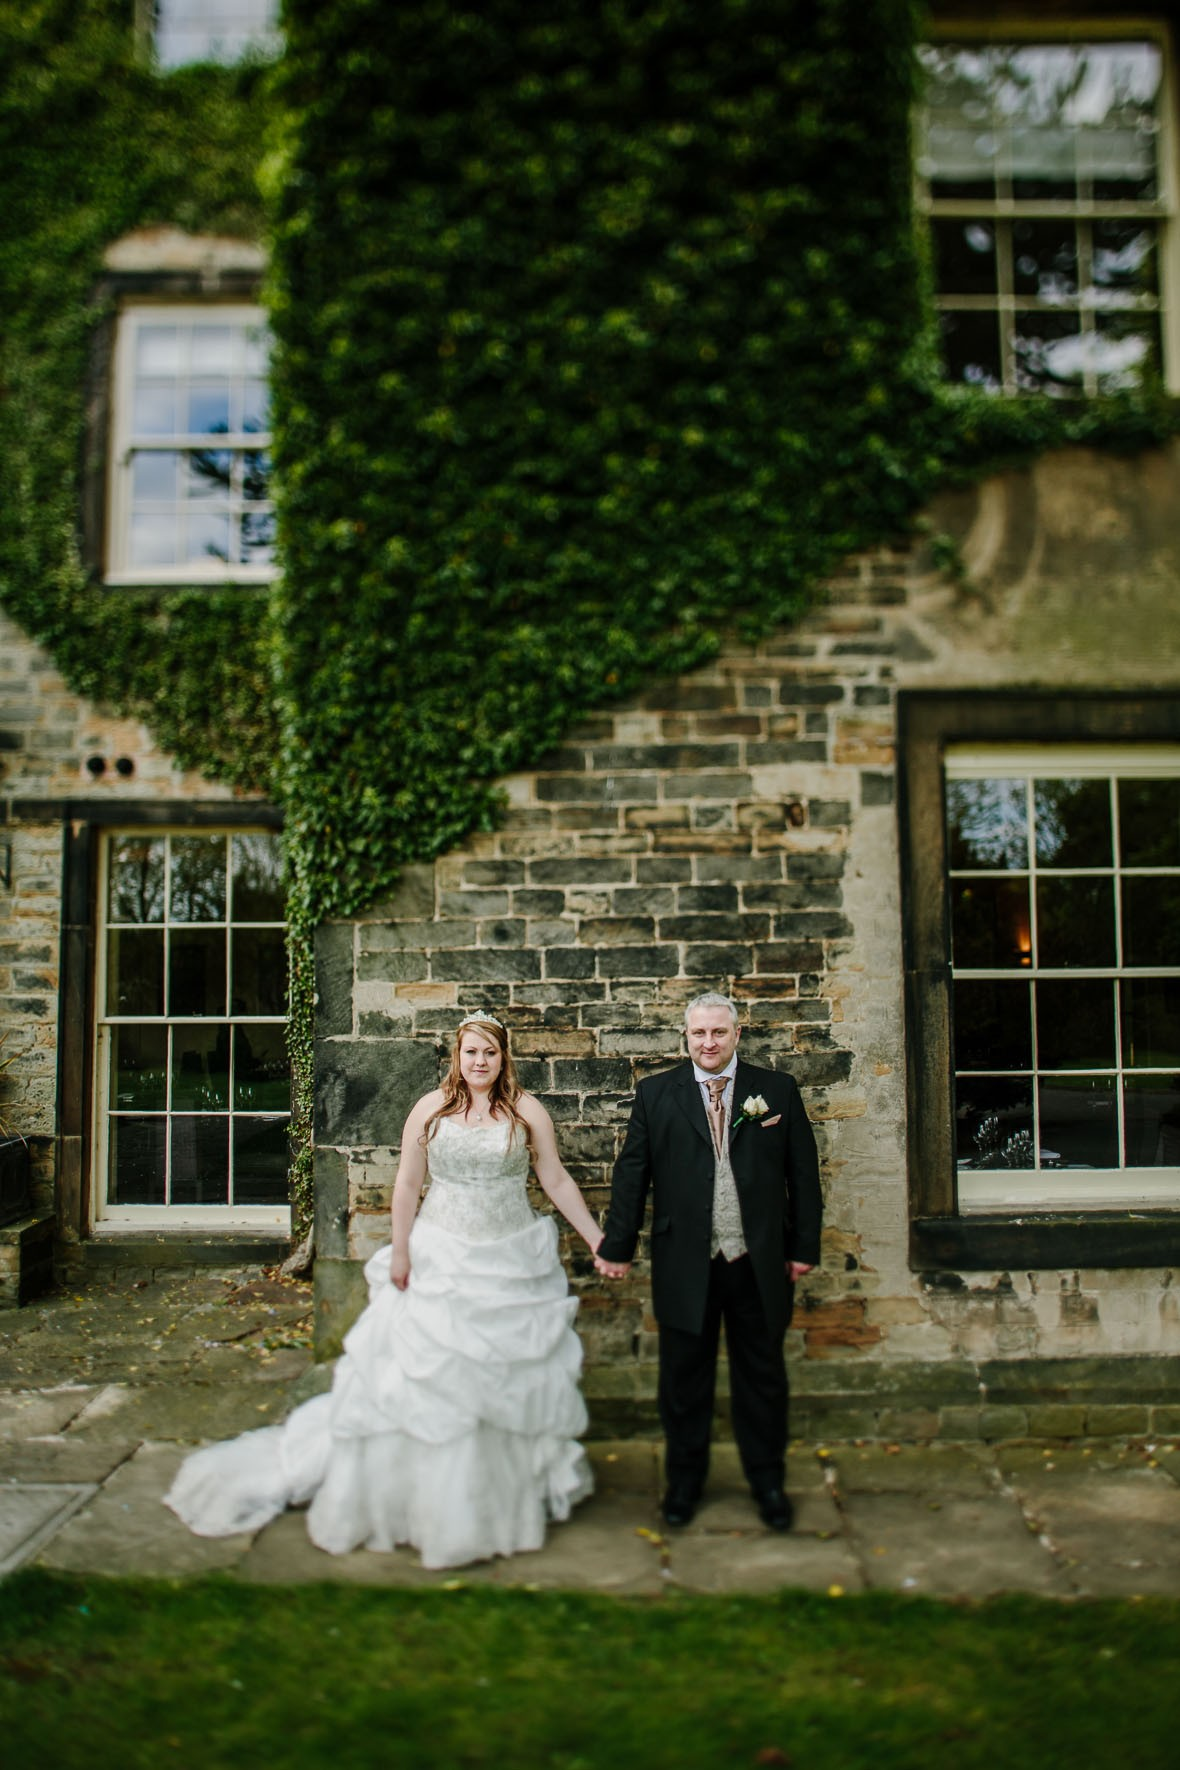 Mosborough-hall hotel-weddings-481